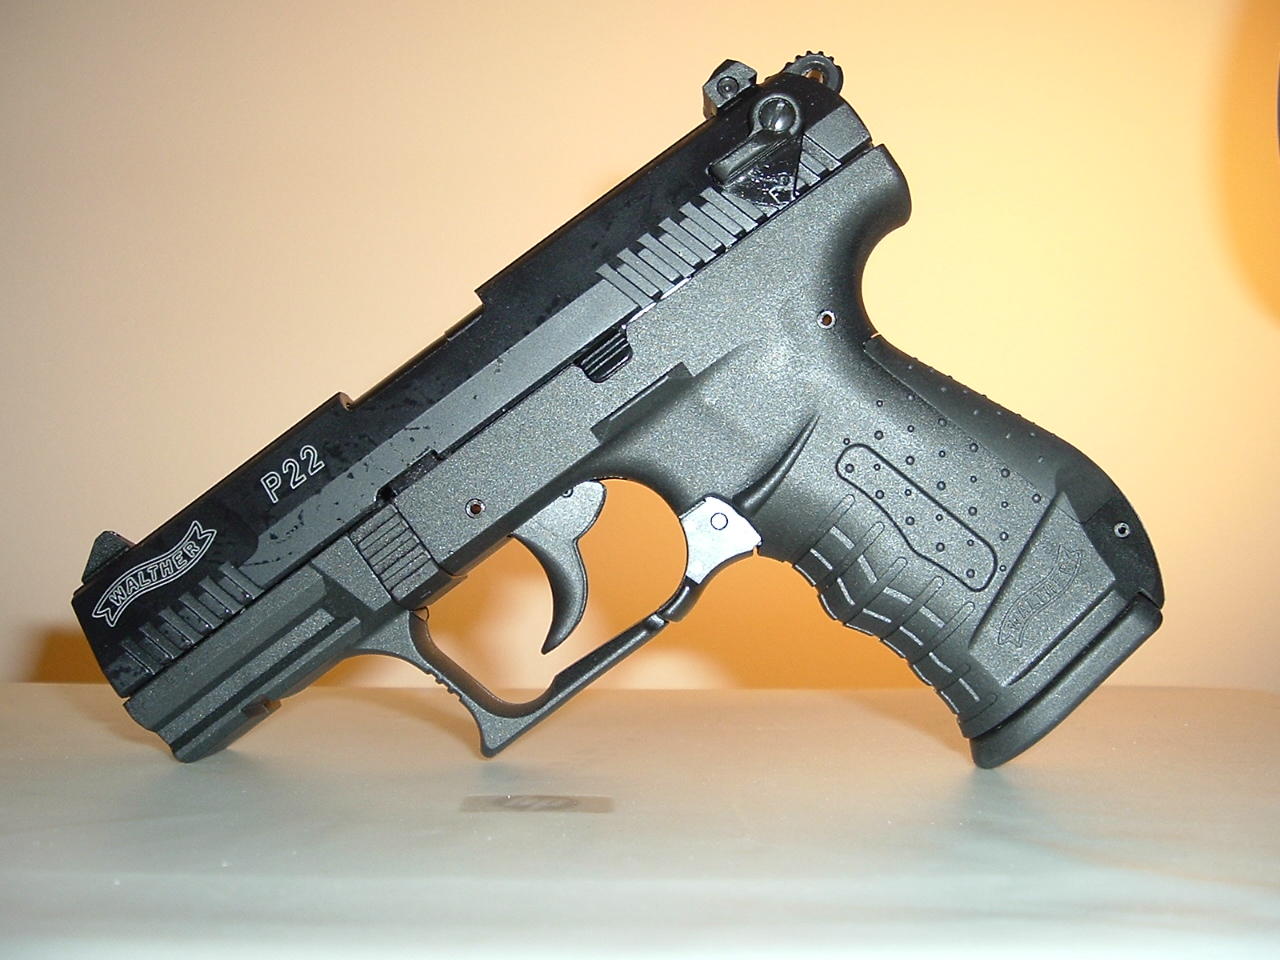 Rimfire Pics, Lets See the Plinkers!(Pic Heavy)-walther-p22-002.jpg